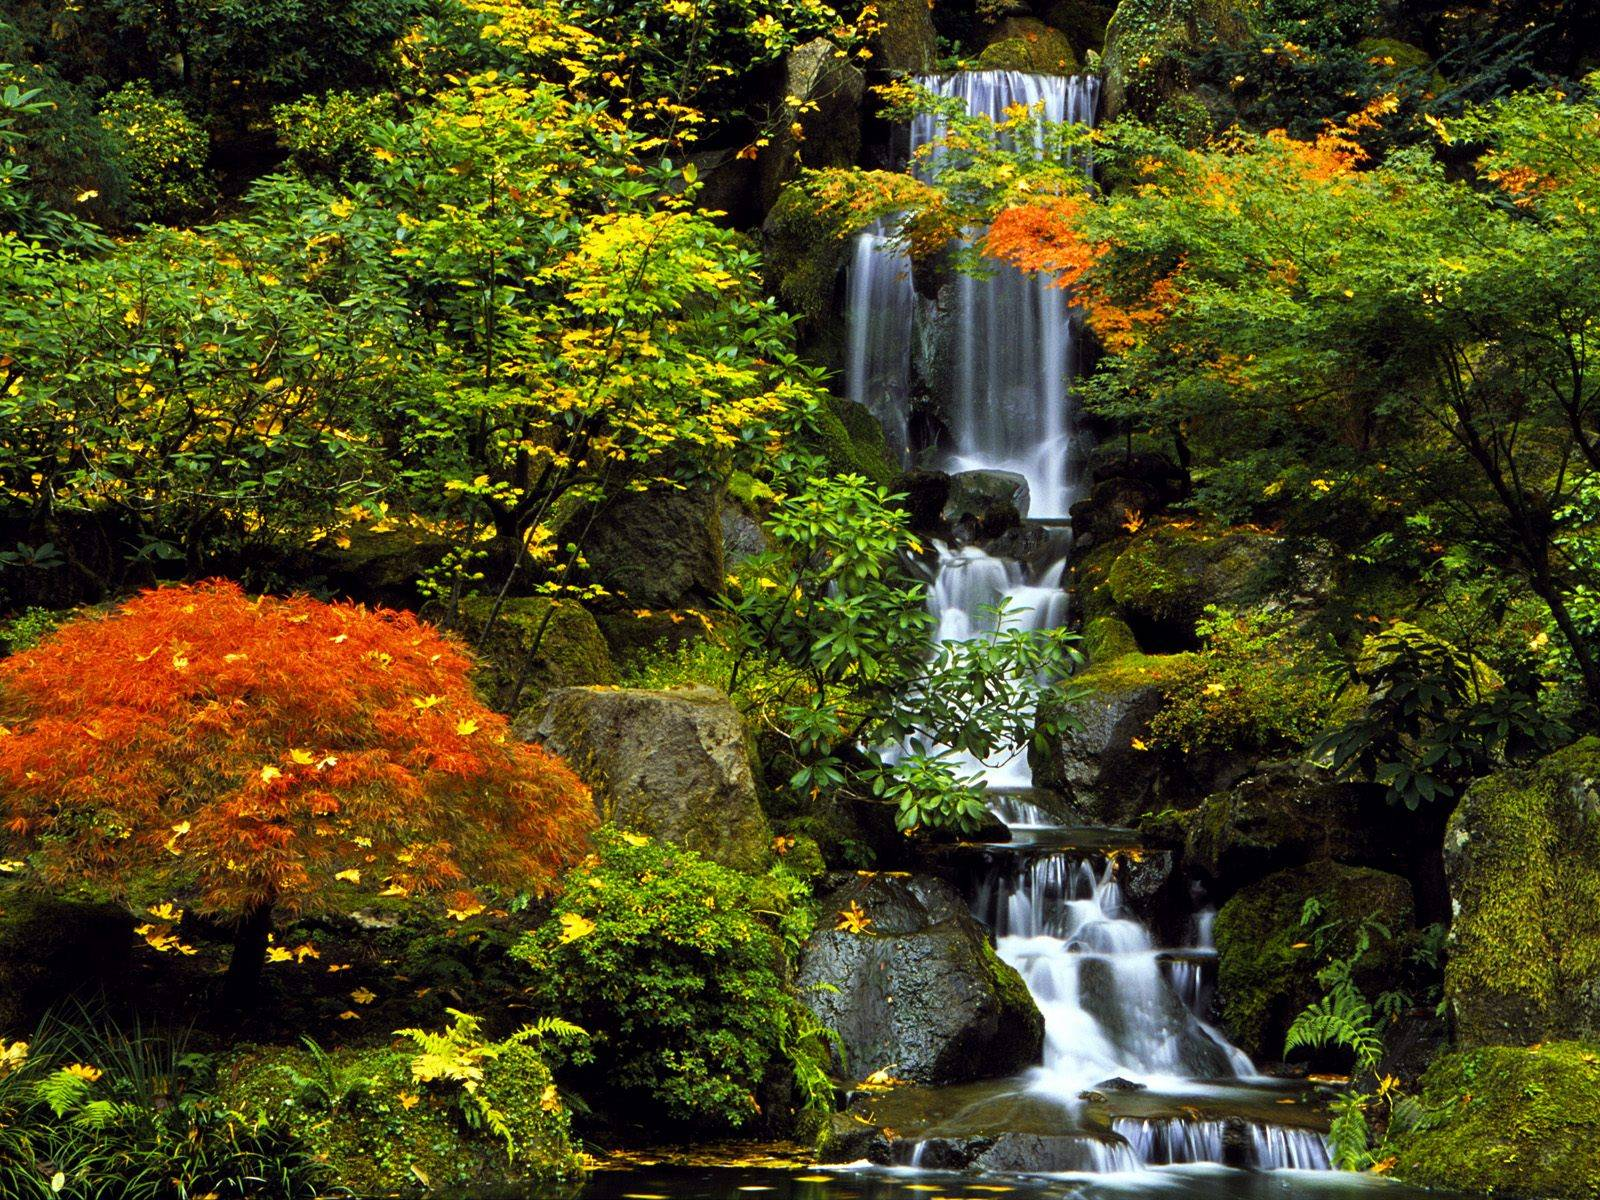 Portland images japanese garden hd wallpaper and background photos 692415 - Japanese garden ...